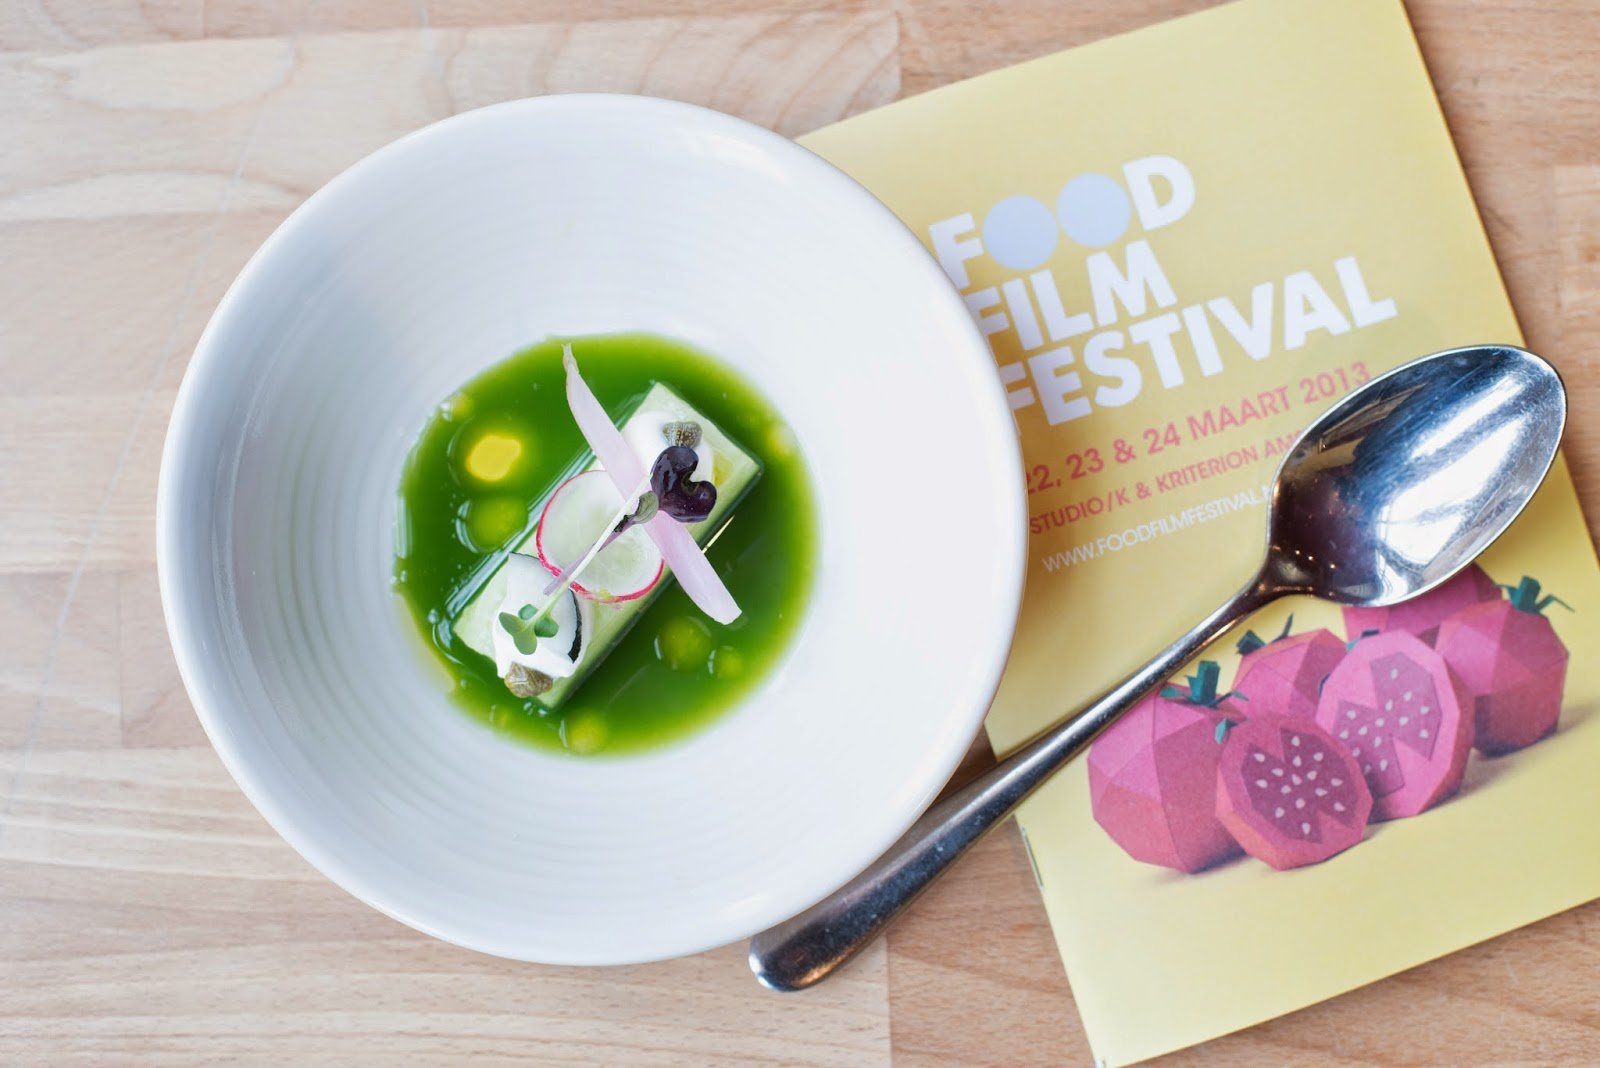 Food Film Festival 2014 Westerpark